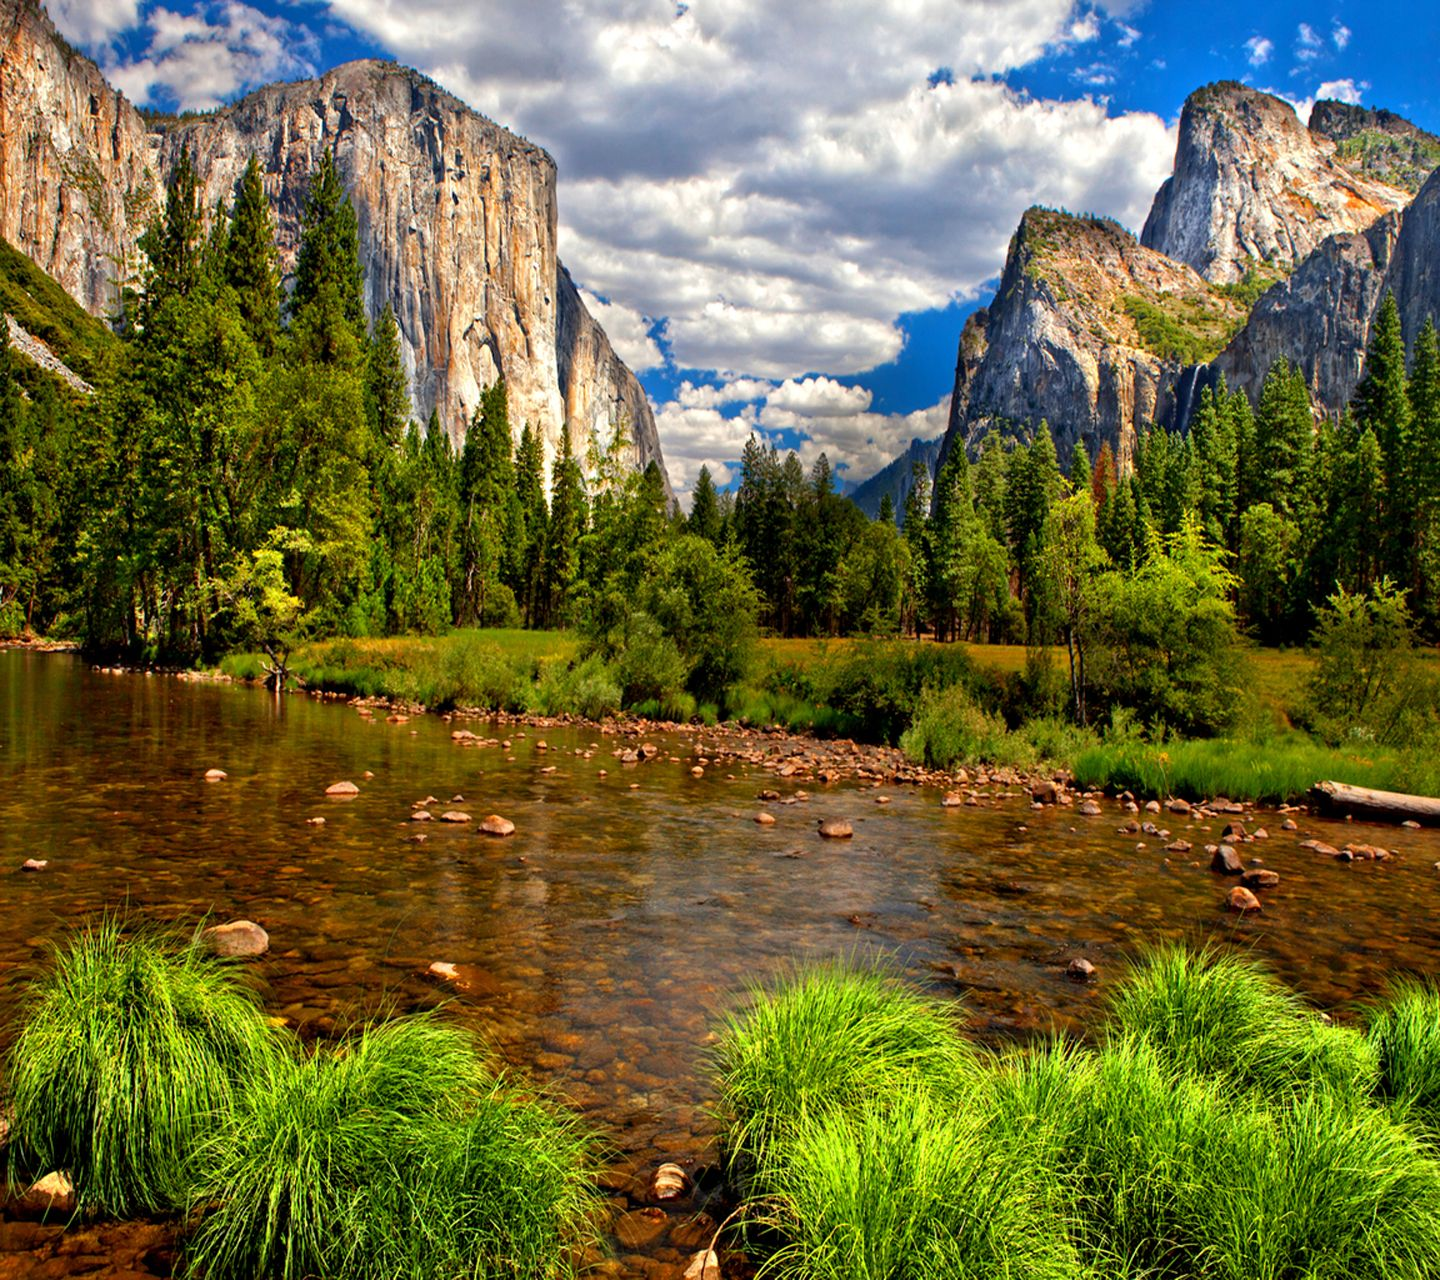 Free Screensavers and Wallpaper | mountains 1440x1280 free Screensaver wallpaper | Places to ...